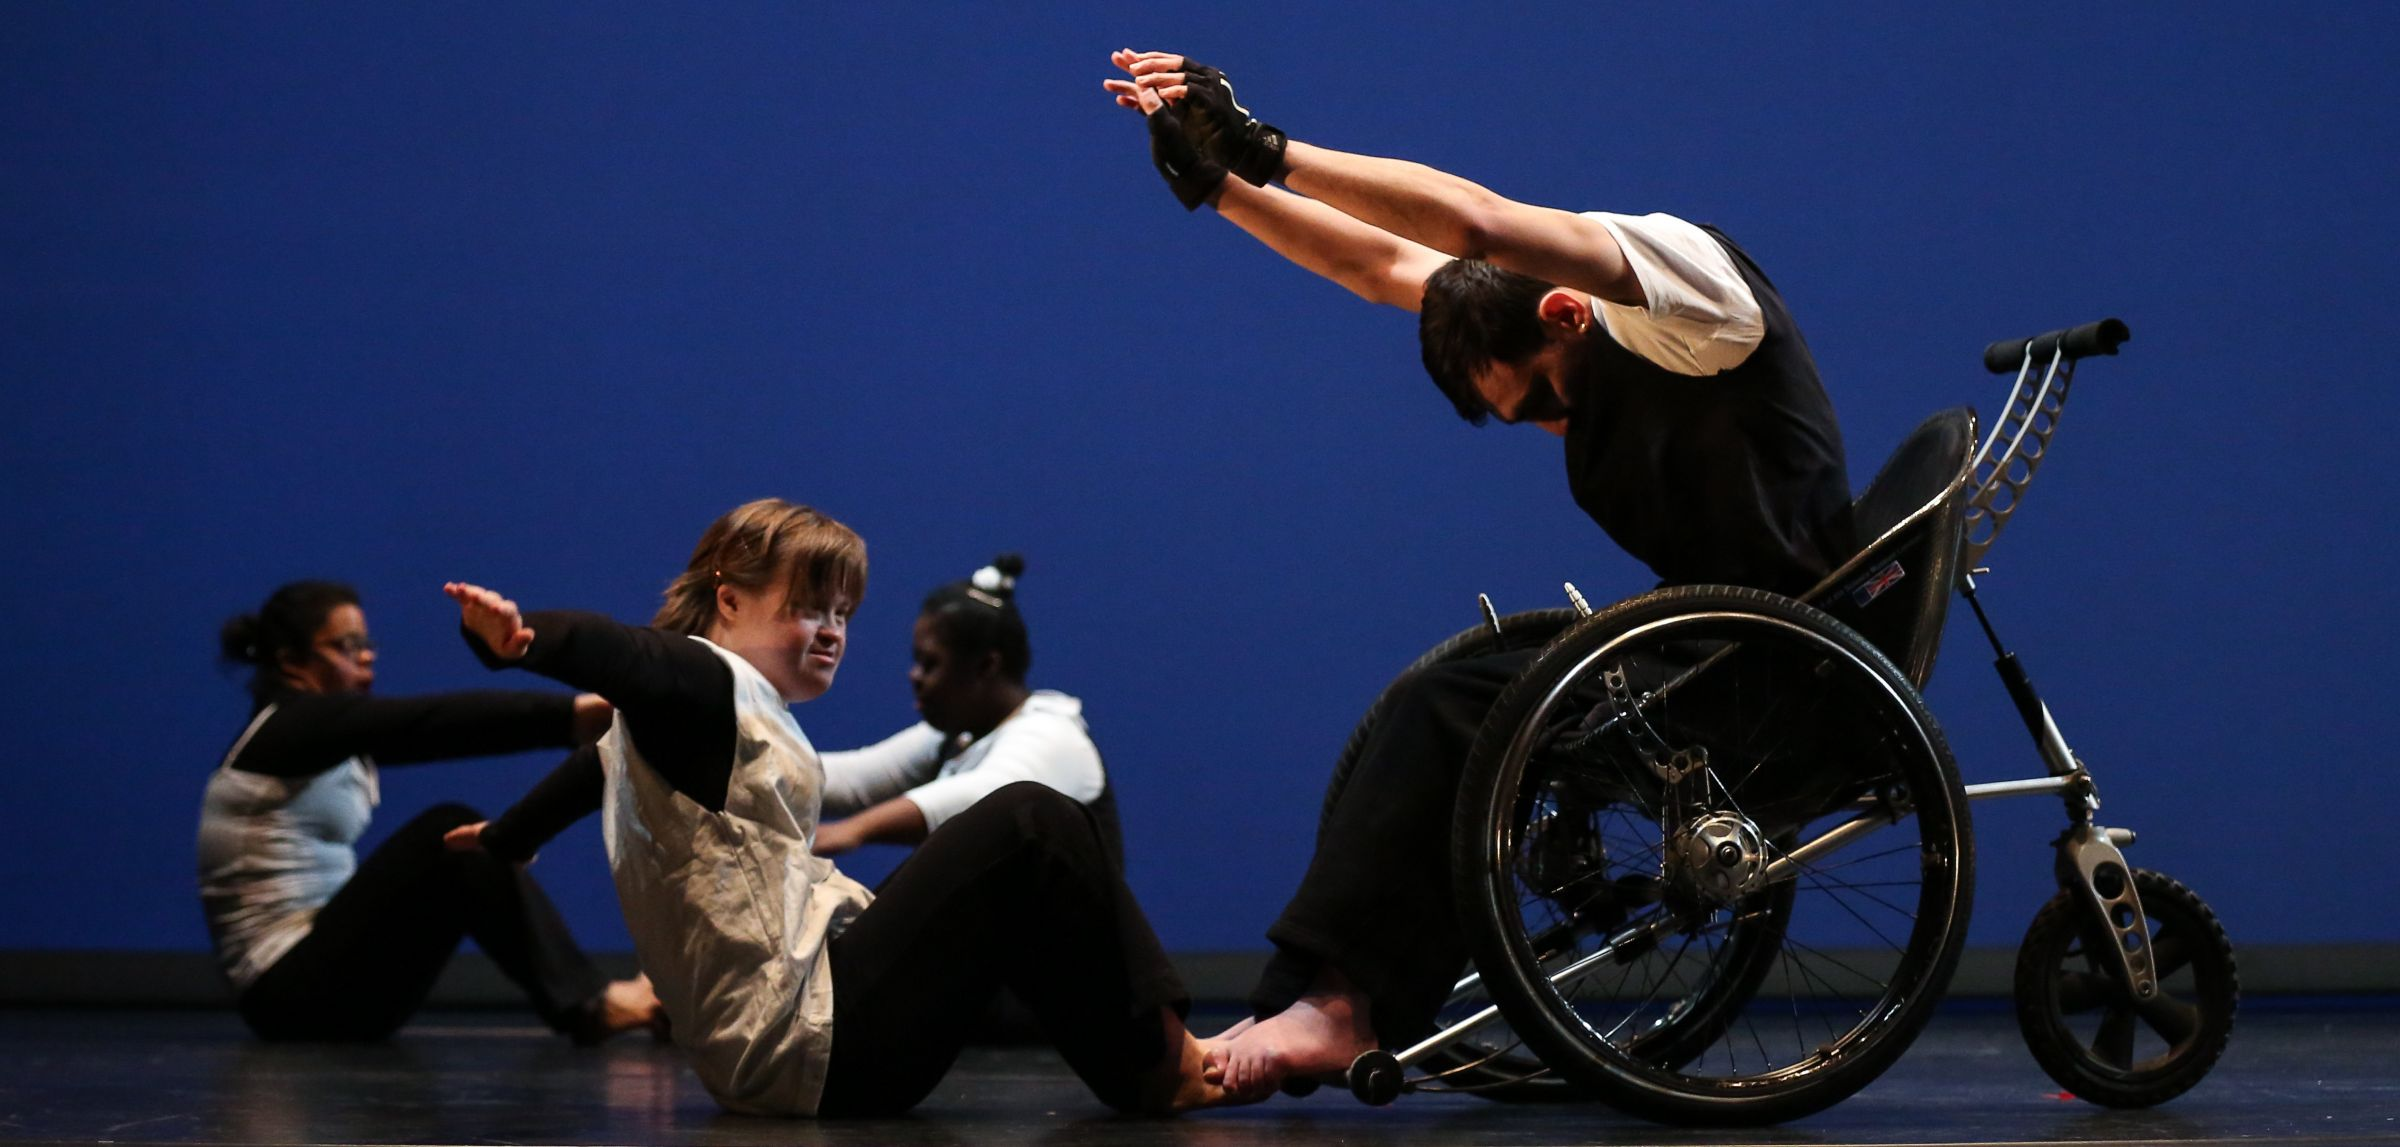 Dancers on stage. One is a wheelchair user